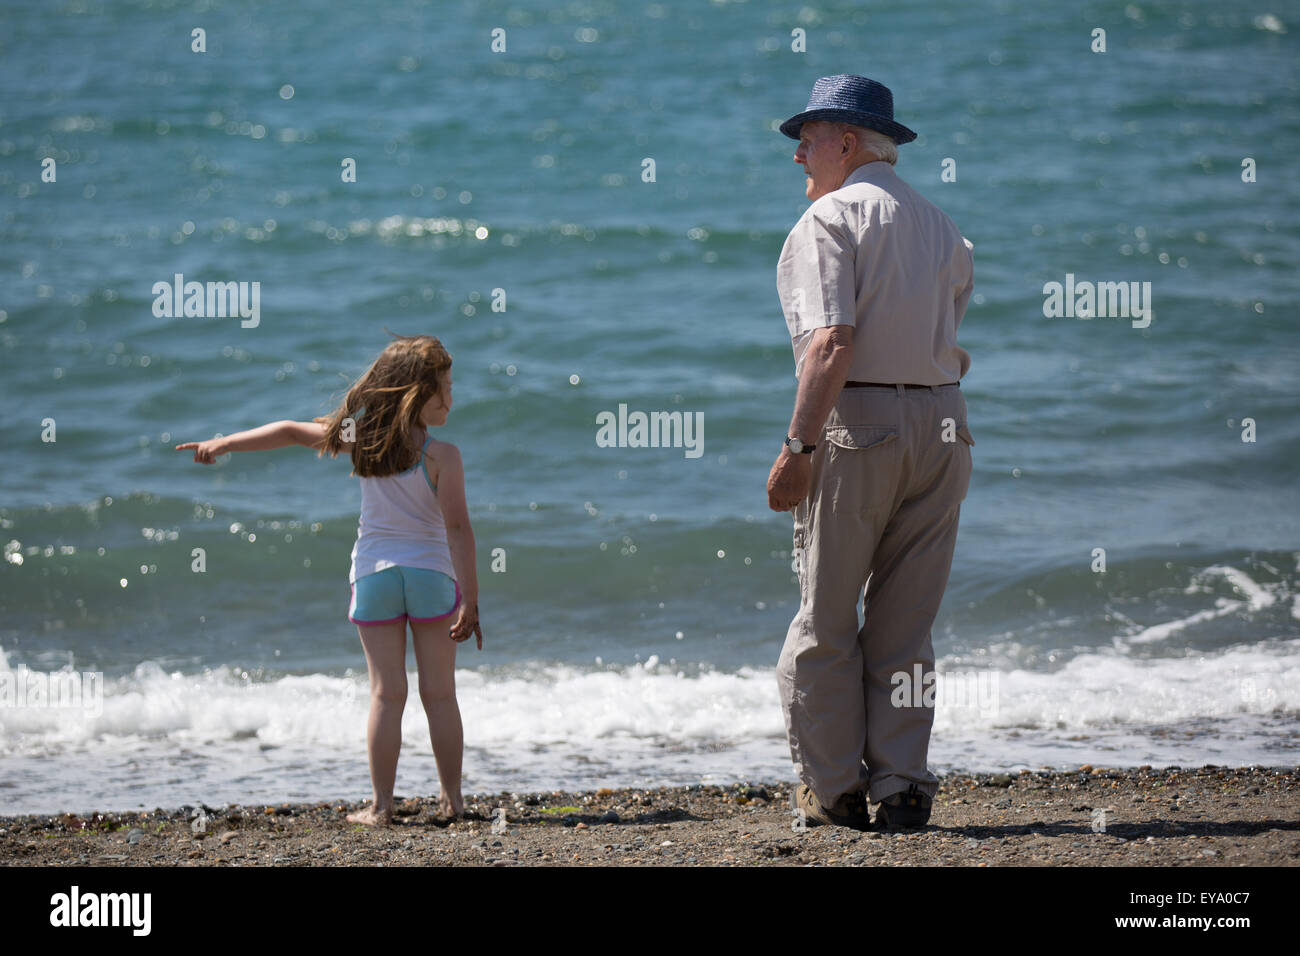 A grandfather and granddaughter watching waves at the seaside - Stock Image